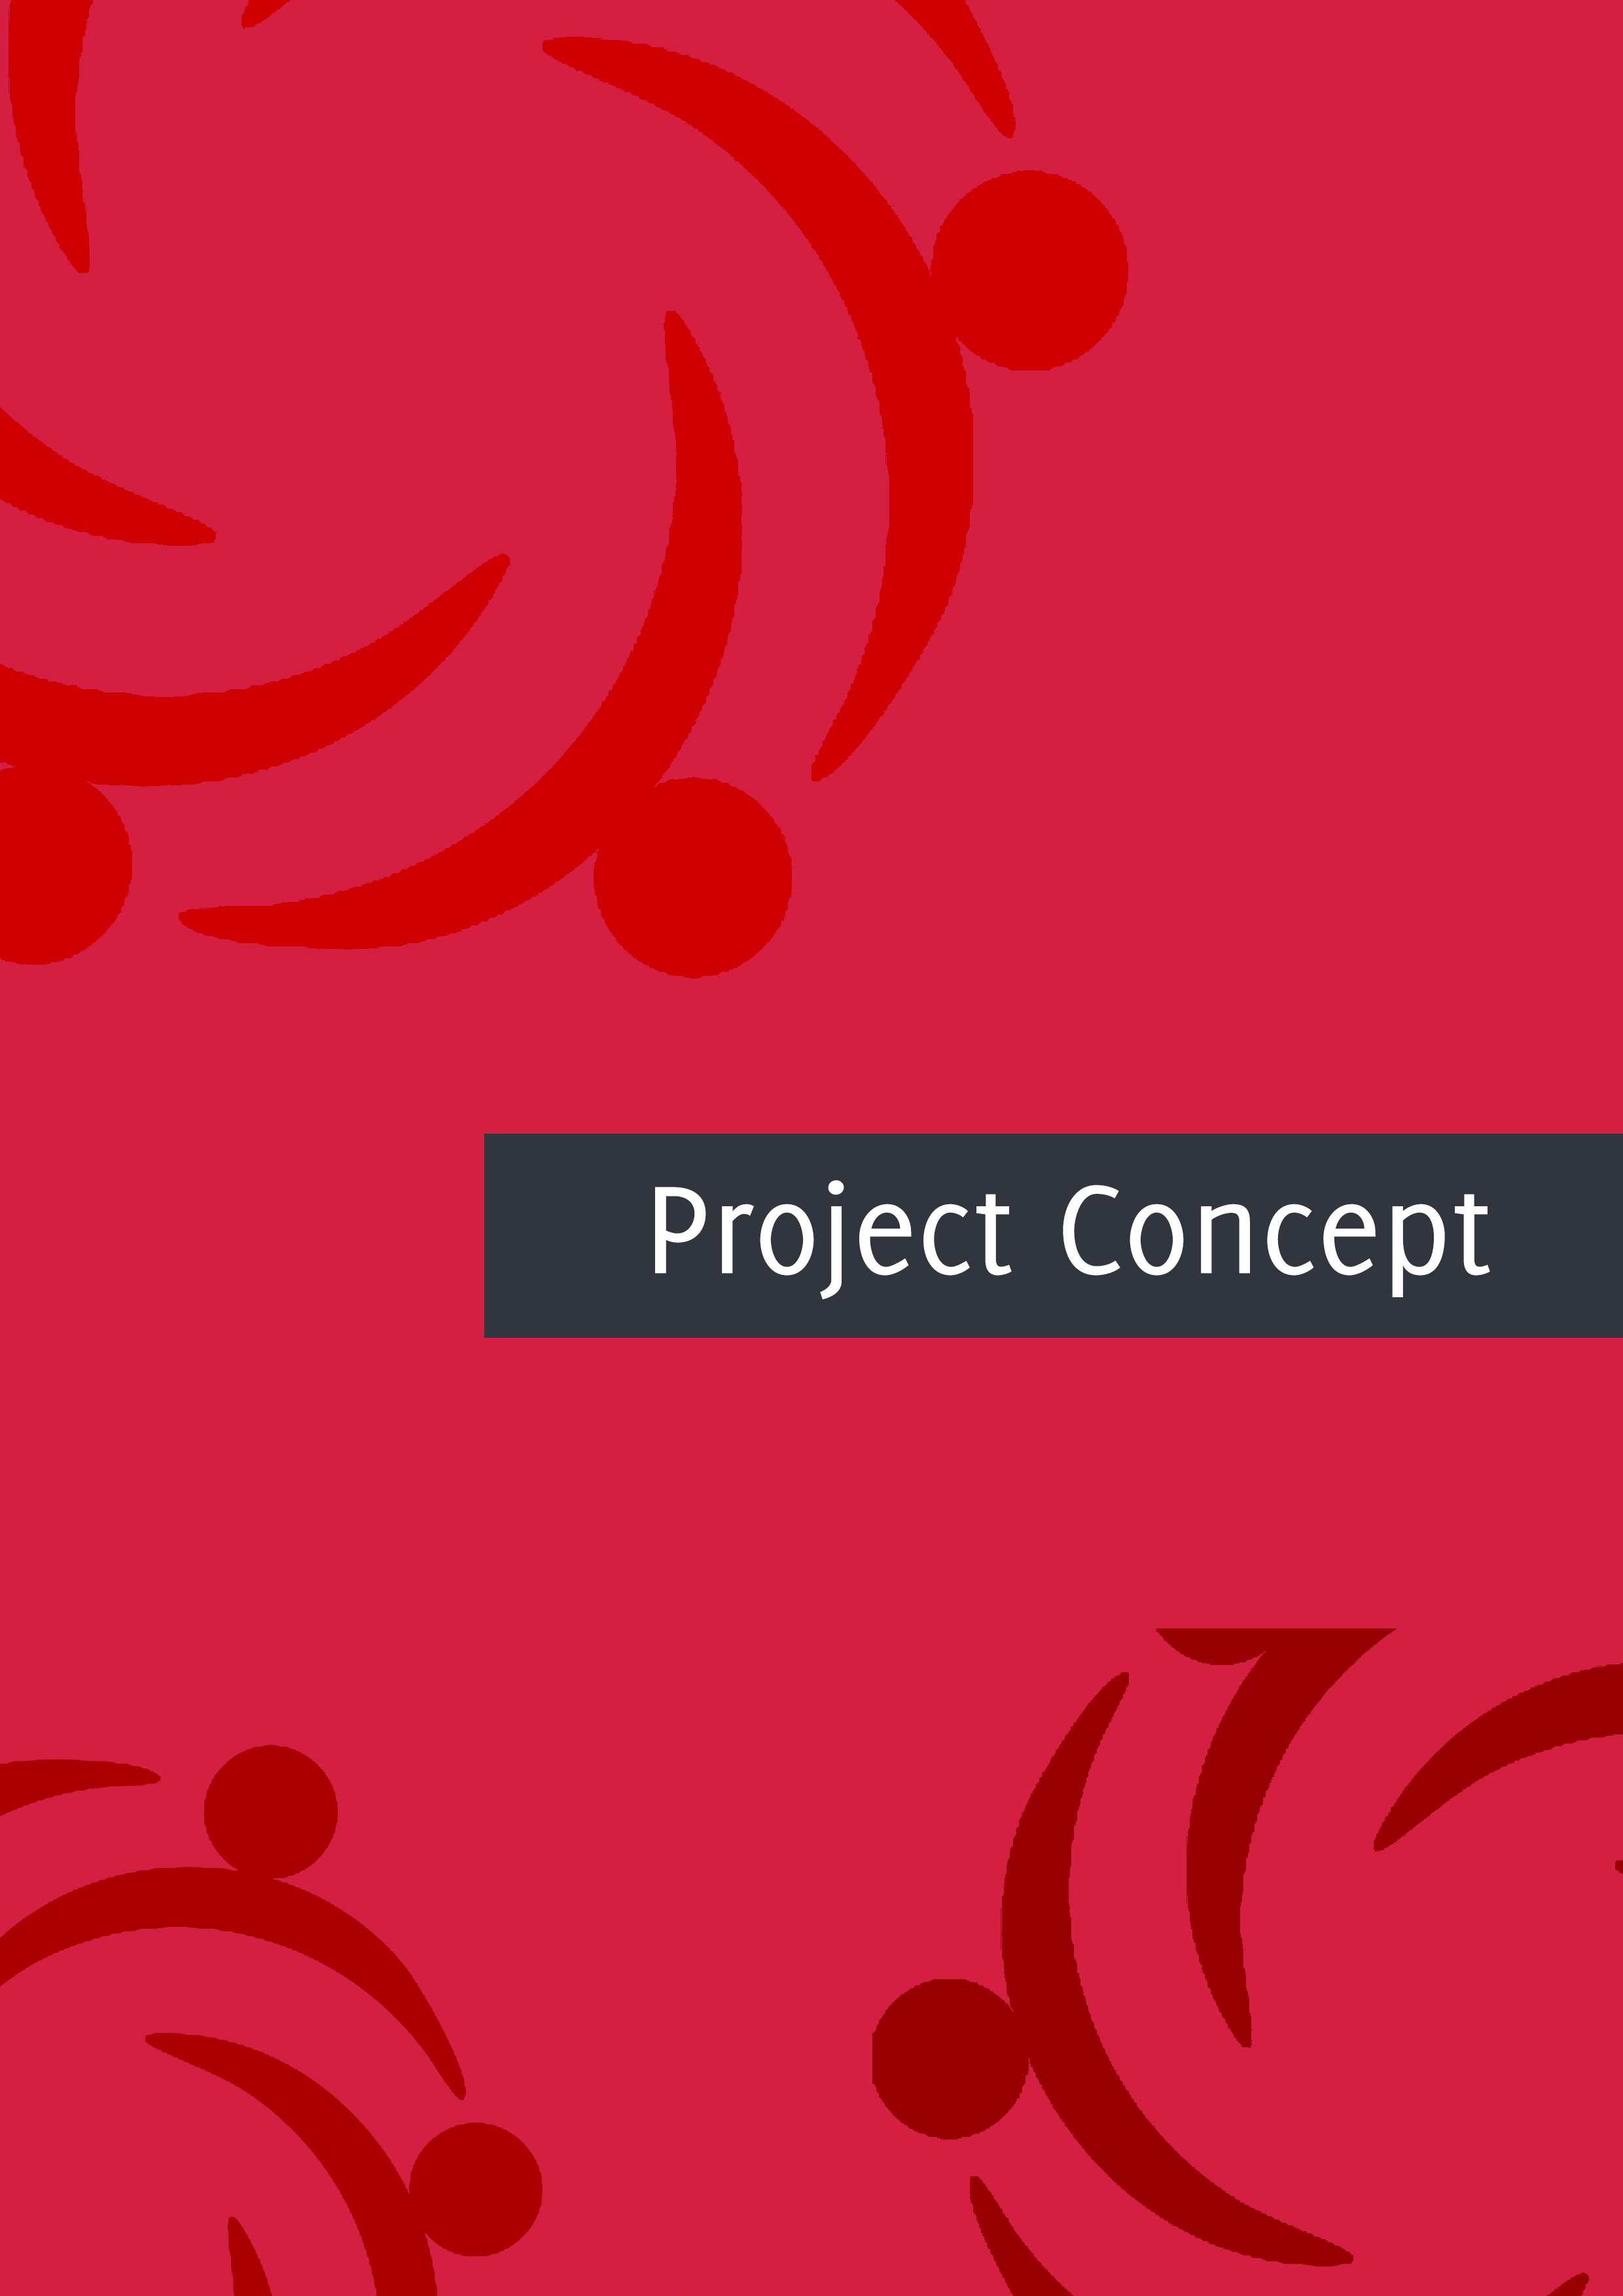 Project-Concept